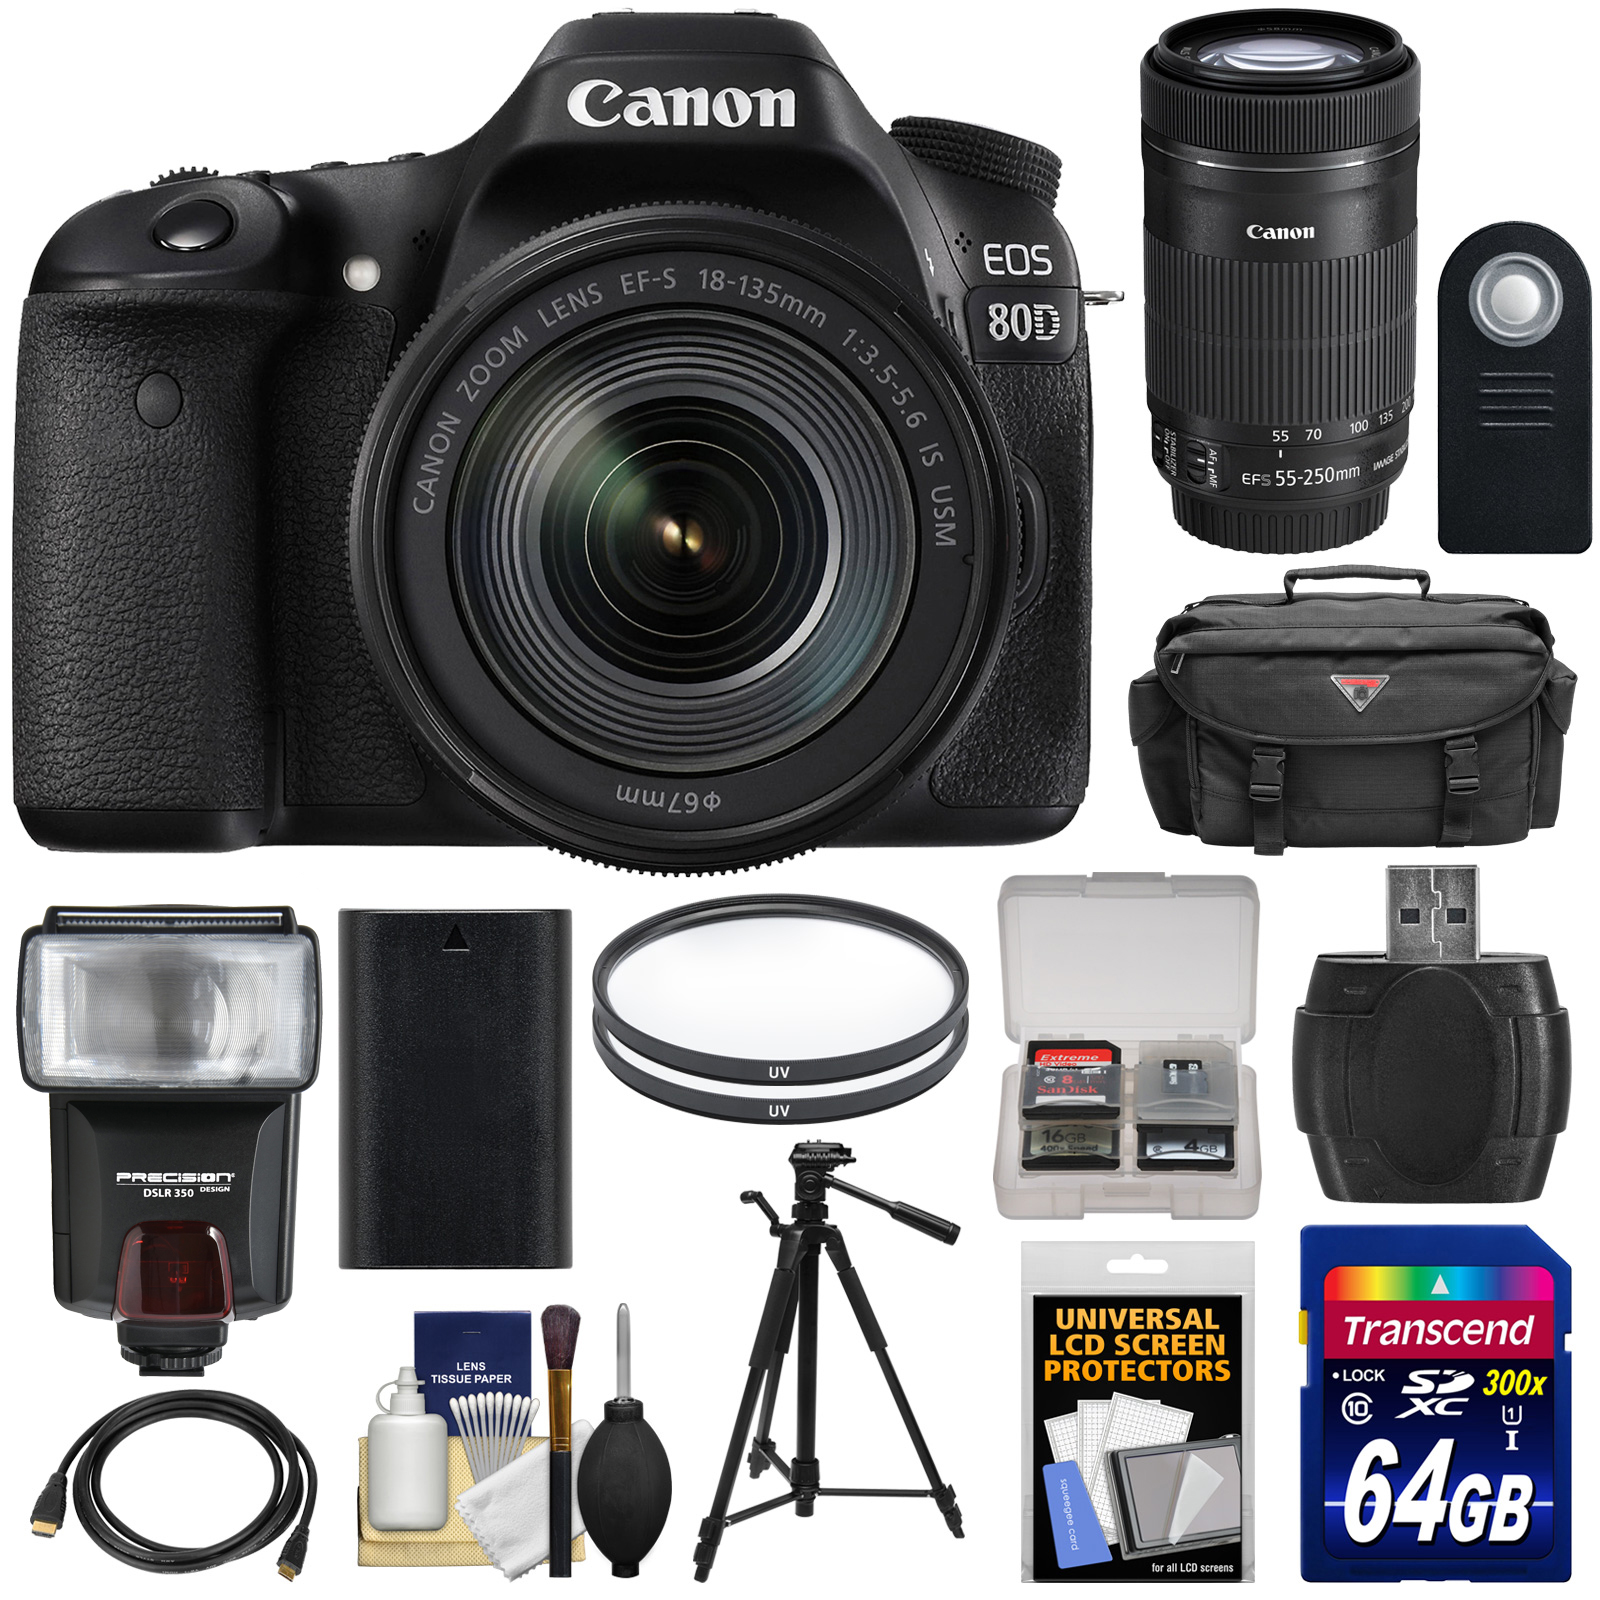 Canon EOS 80D Wi-Fi Digital SLR Camera & 18-135mm IS USM with 55-250mm IS STM Lens + 64GB Card + Battery +... by Canon